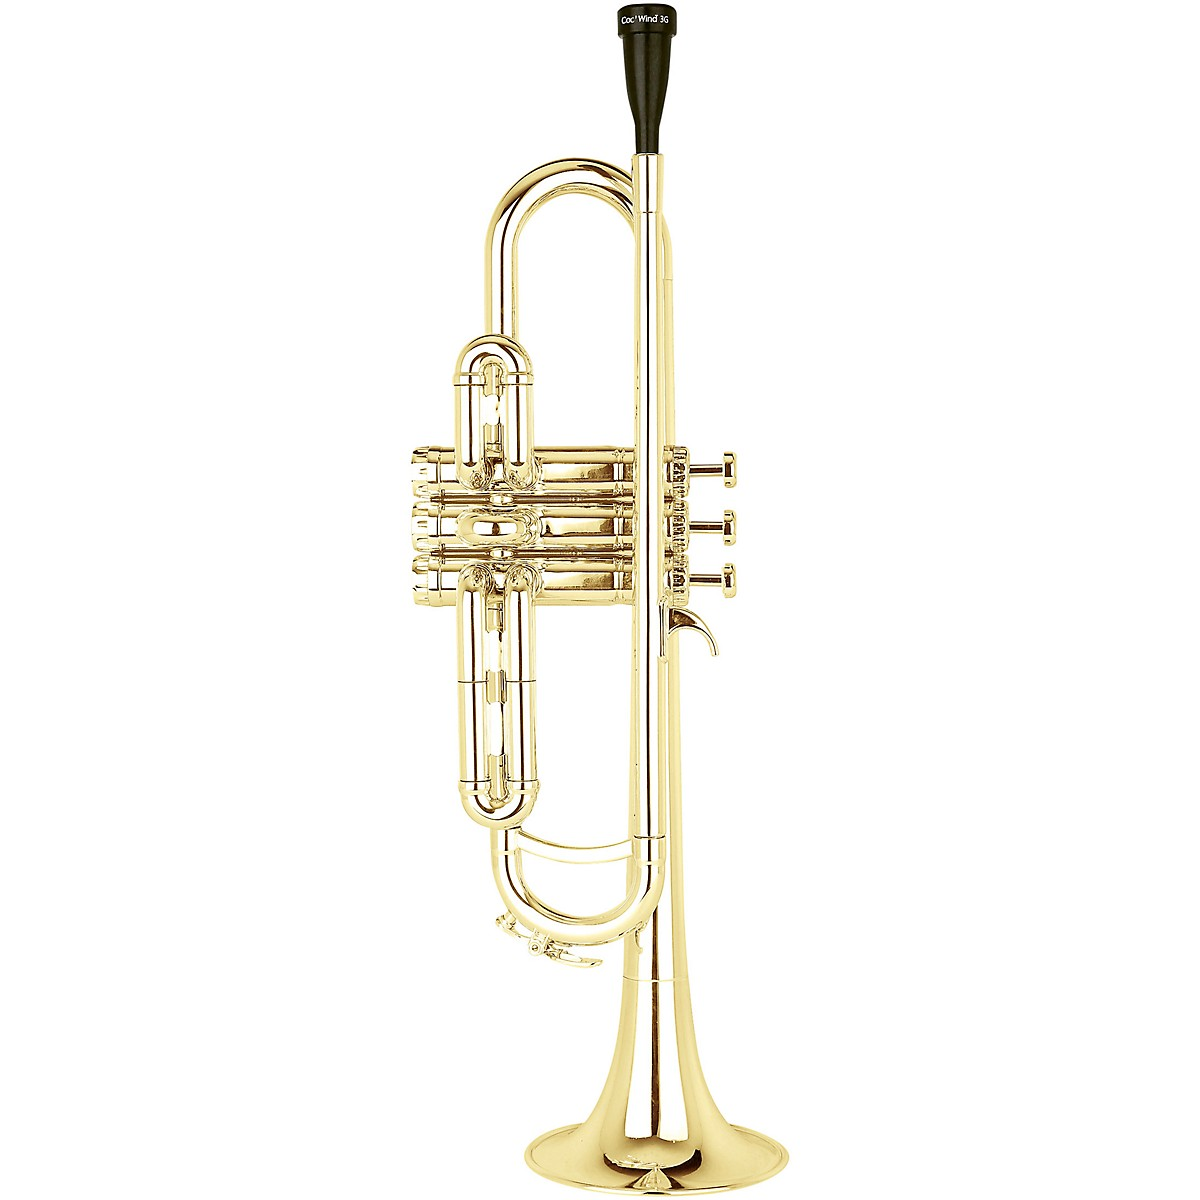 Cool Wind CTR-200 Metallic Series Plastic Bb Trumpet